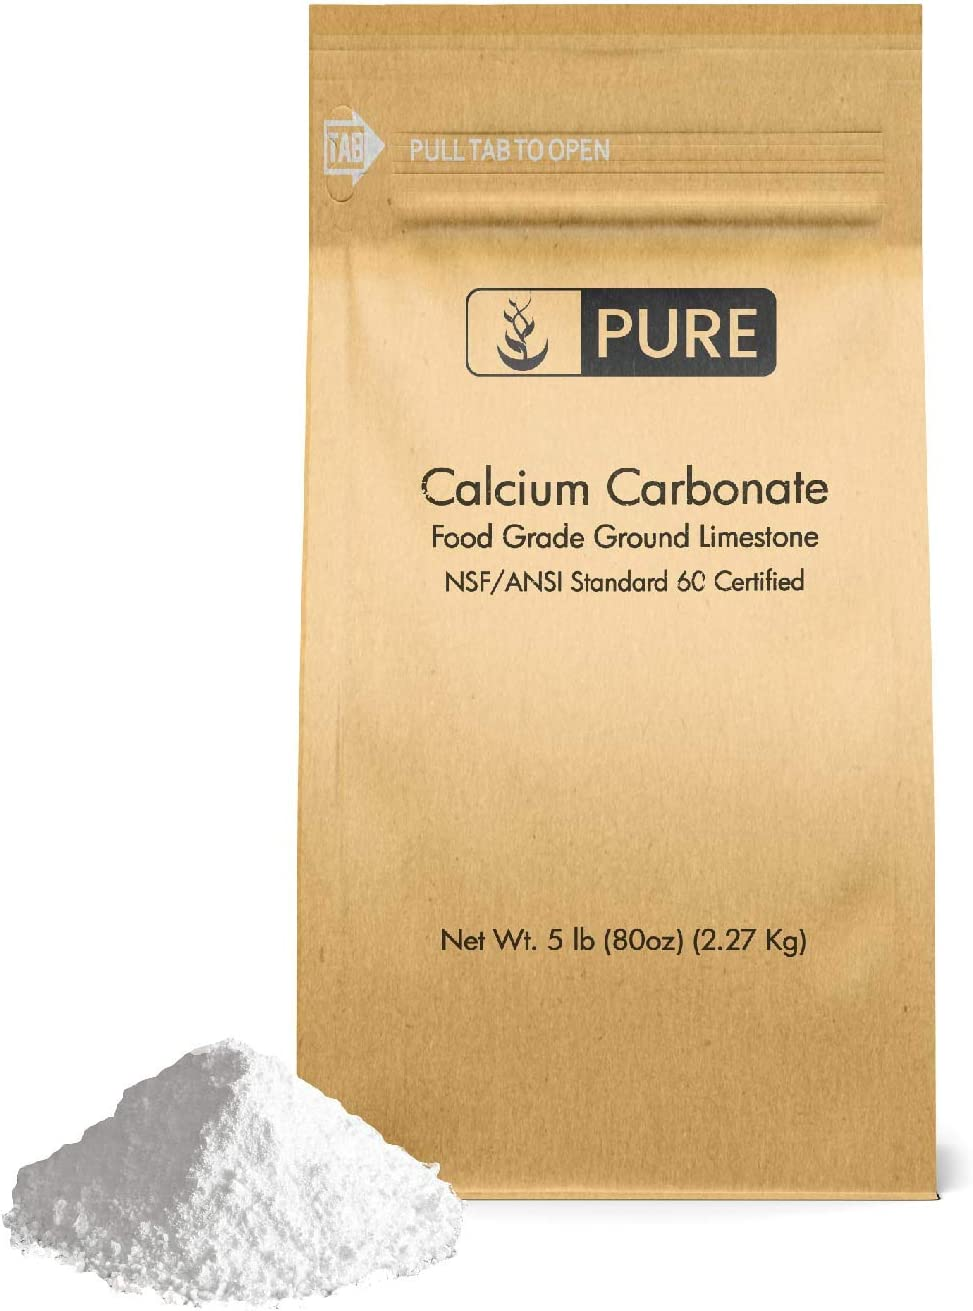 Calcium Carbonate Powder (5 lb.) by Pure Organic Ingredients, Eco-Friendly Packaging, Dietary Supplement, Antacid, Food Preservative, More